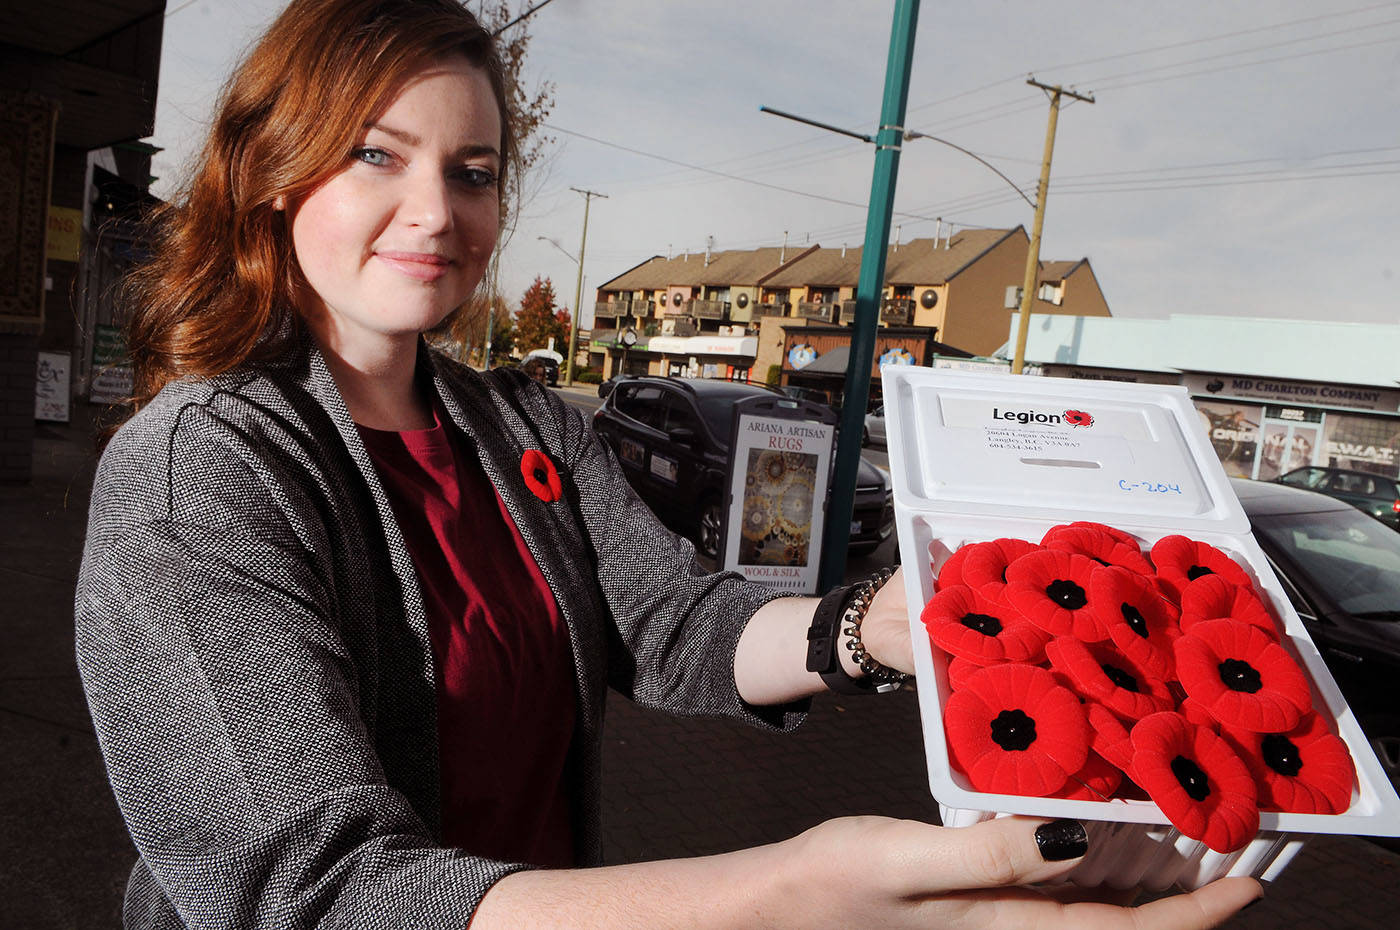 Distributing poppy boxes will help deliver support to B C